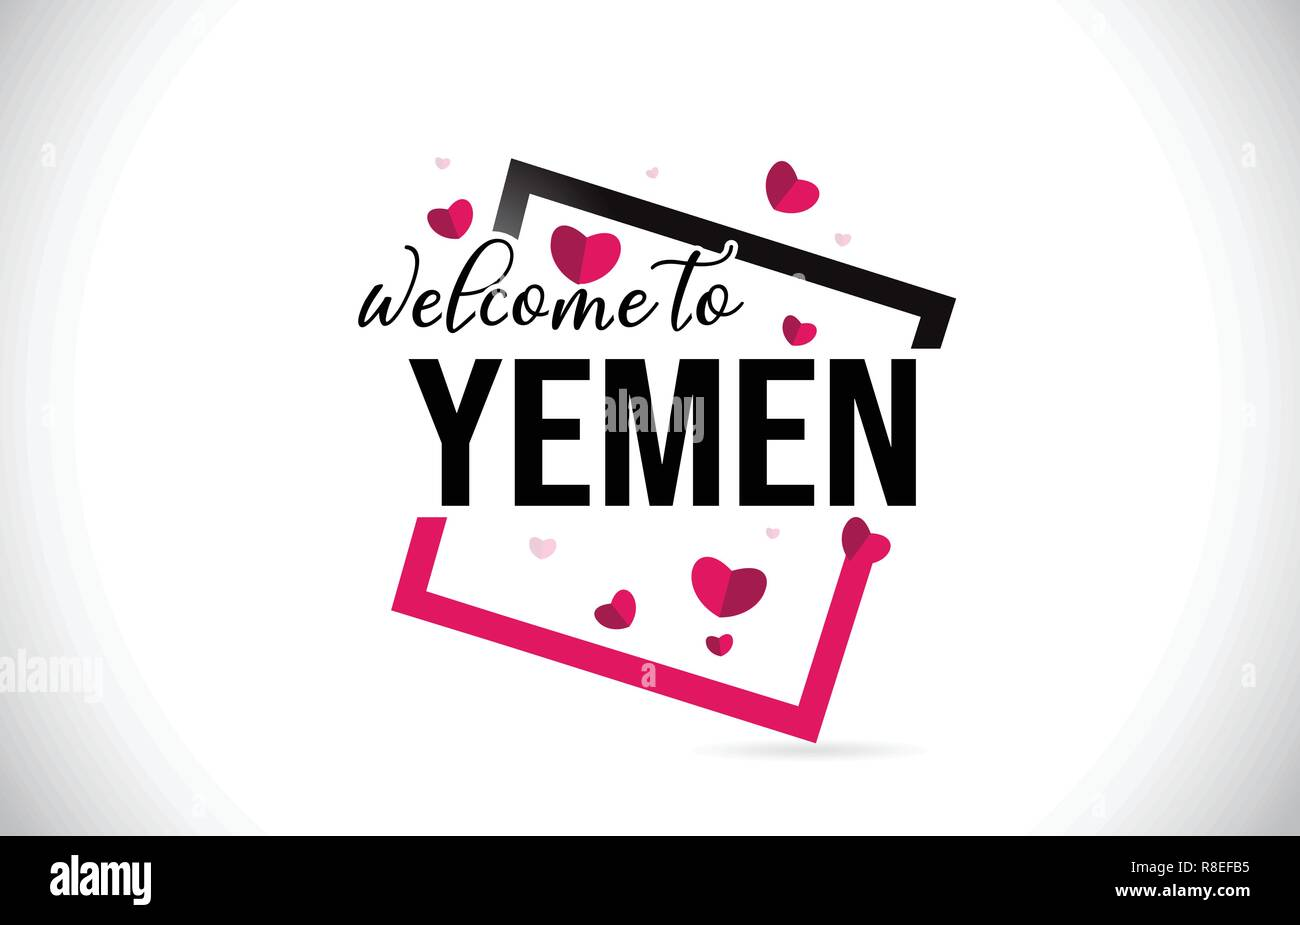 Yemen Welcome To Word Text with Handwritten Font and  Red Hearts Square Design Illustration Vector. - Stock Vector